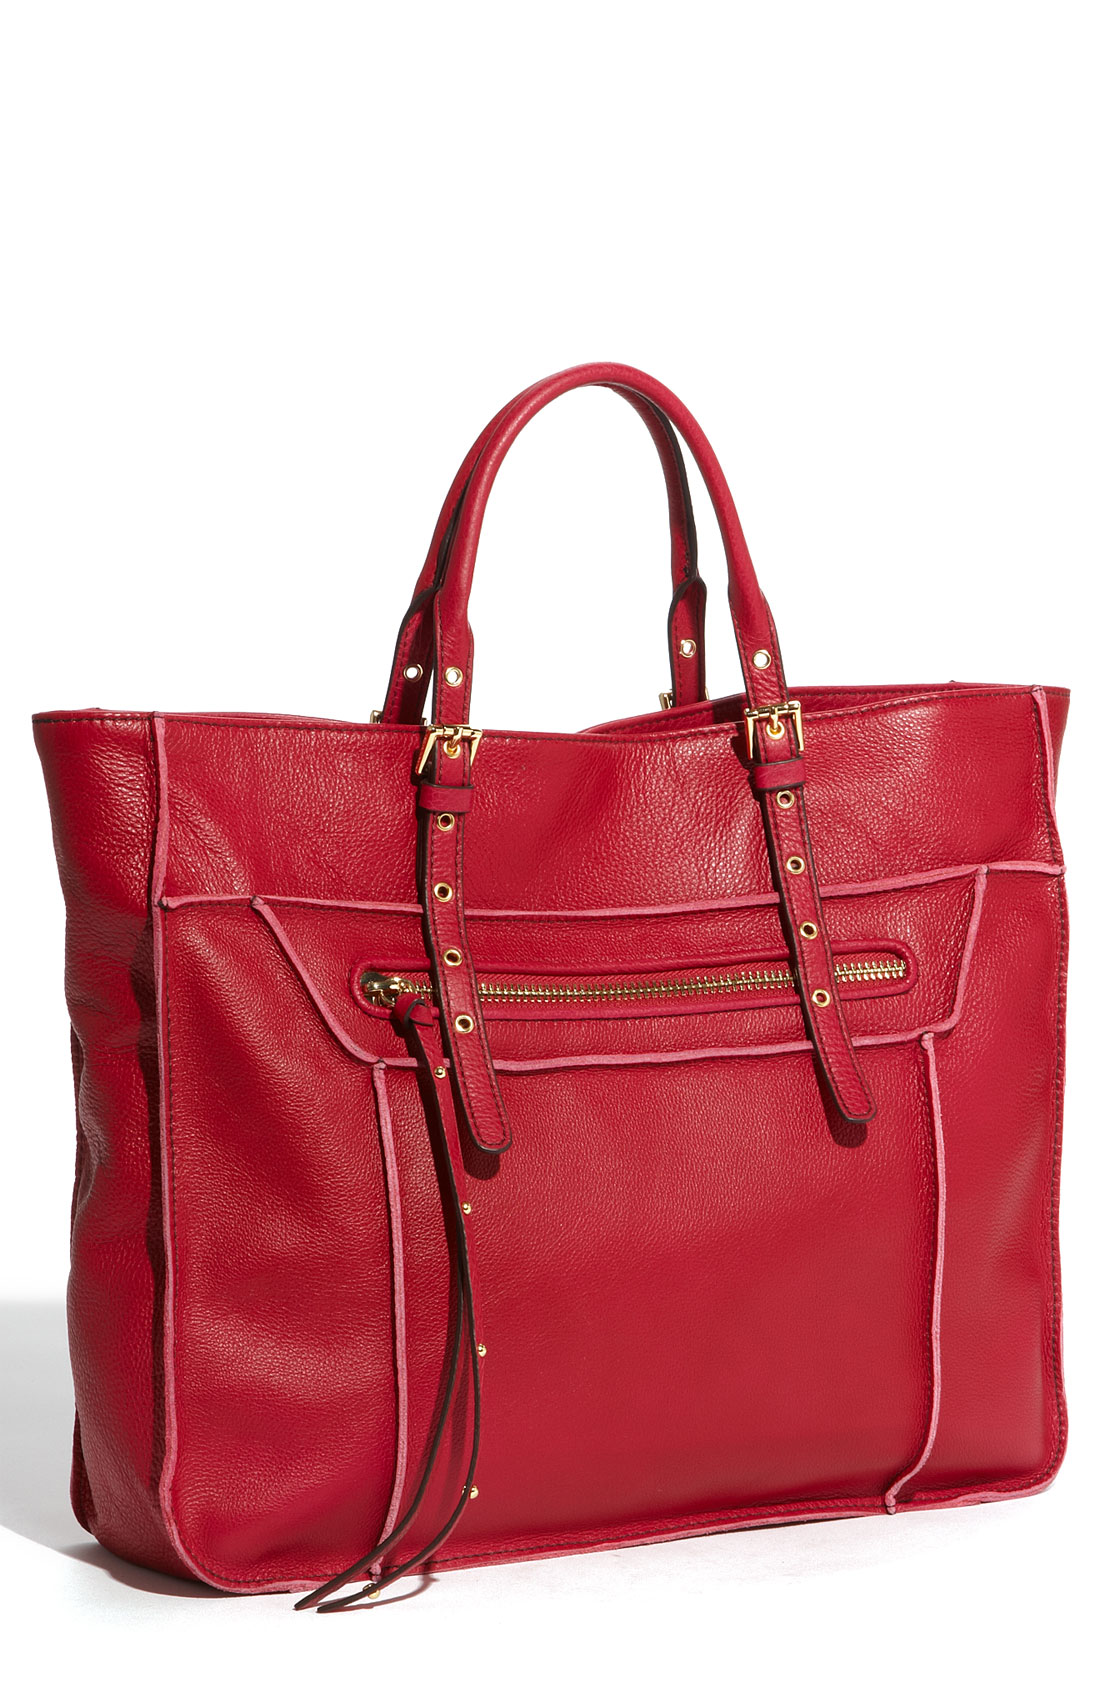 steven by steve madden france leather tote in red raspberry lyst. Black Bedroom Furniture Sets. Home Design Ideas